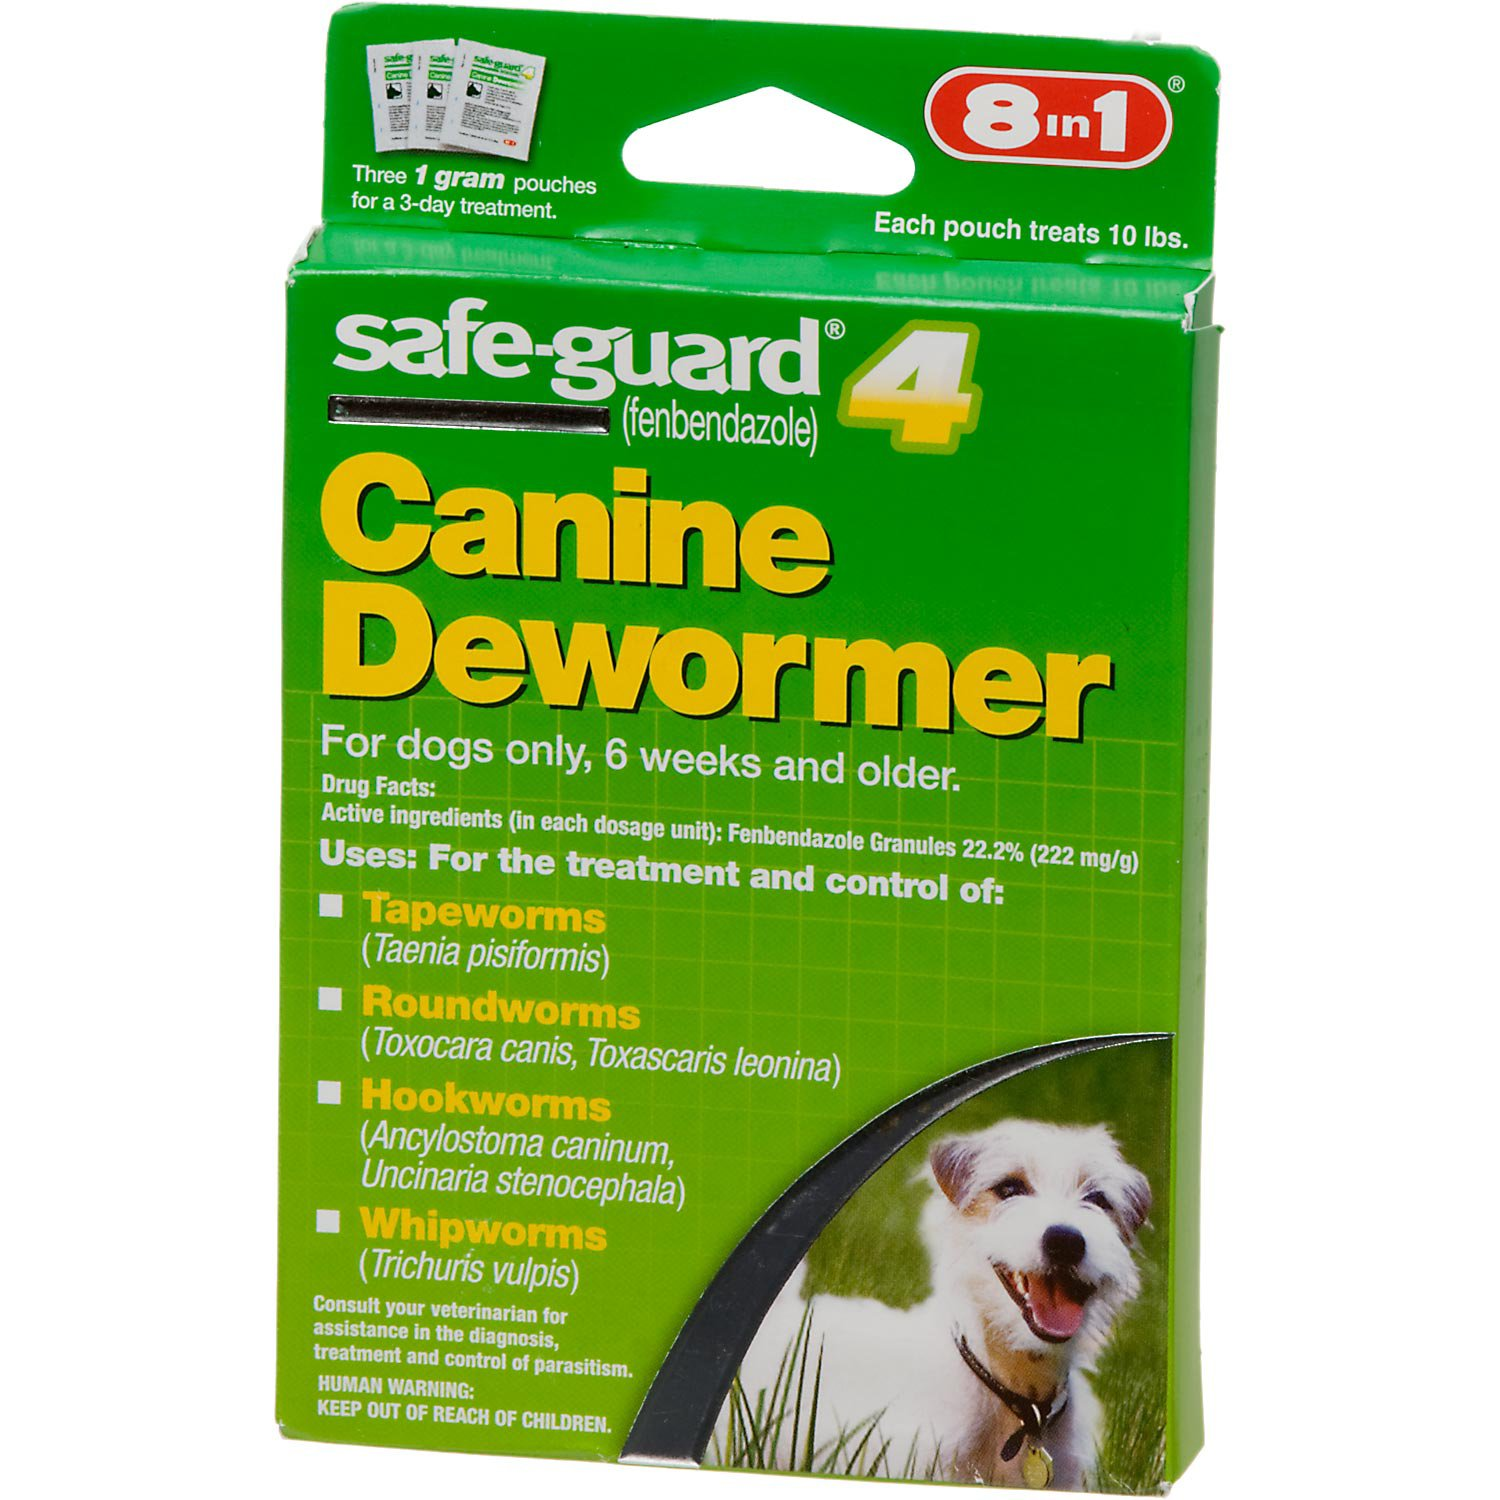 8 In 1 Safe Guard 4 Canine Dewormer For Small Dogs Worms In Dogs